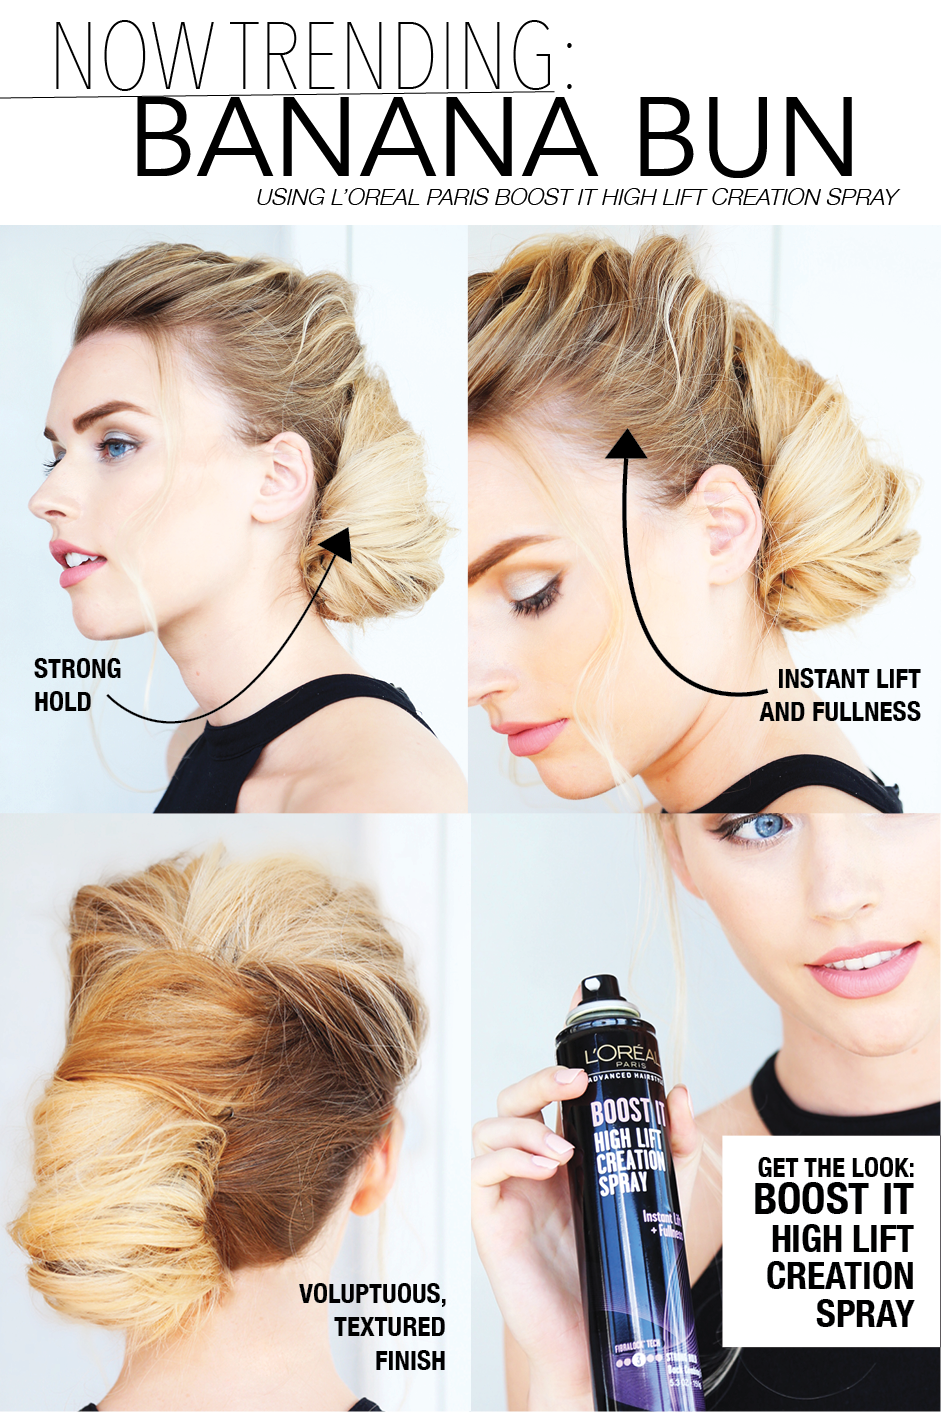 Luoréal advanced hairstyle boost it high lift creation spray gives